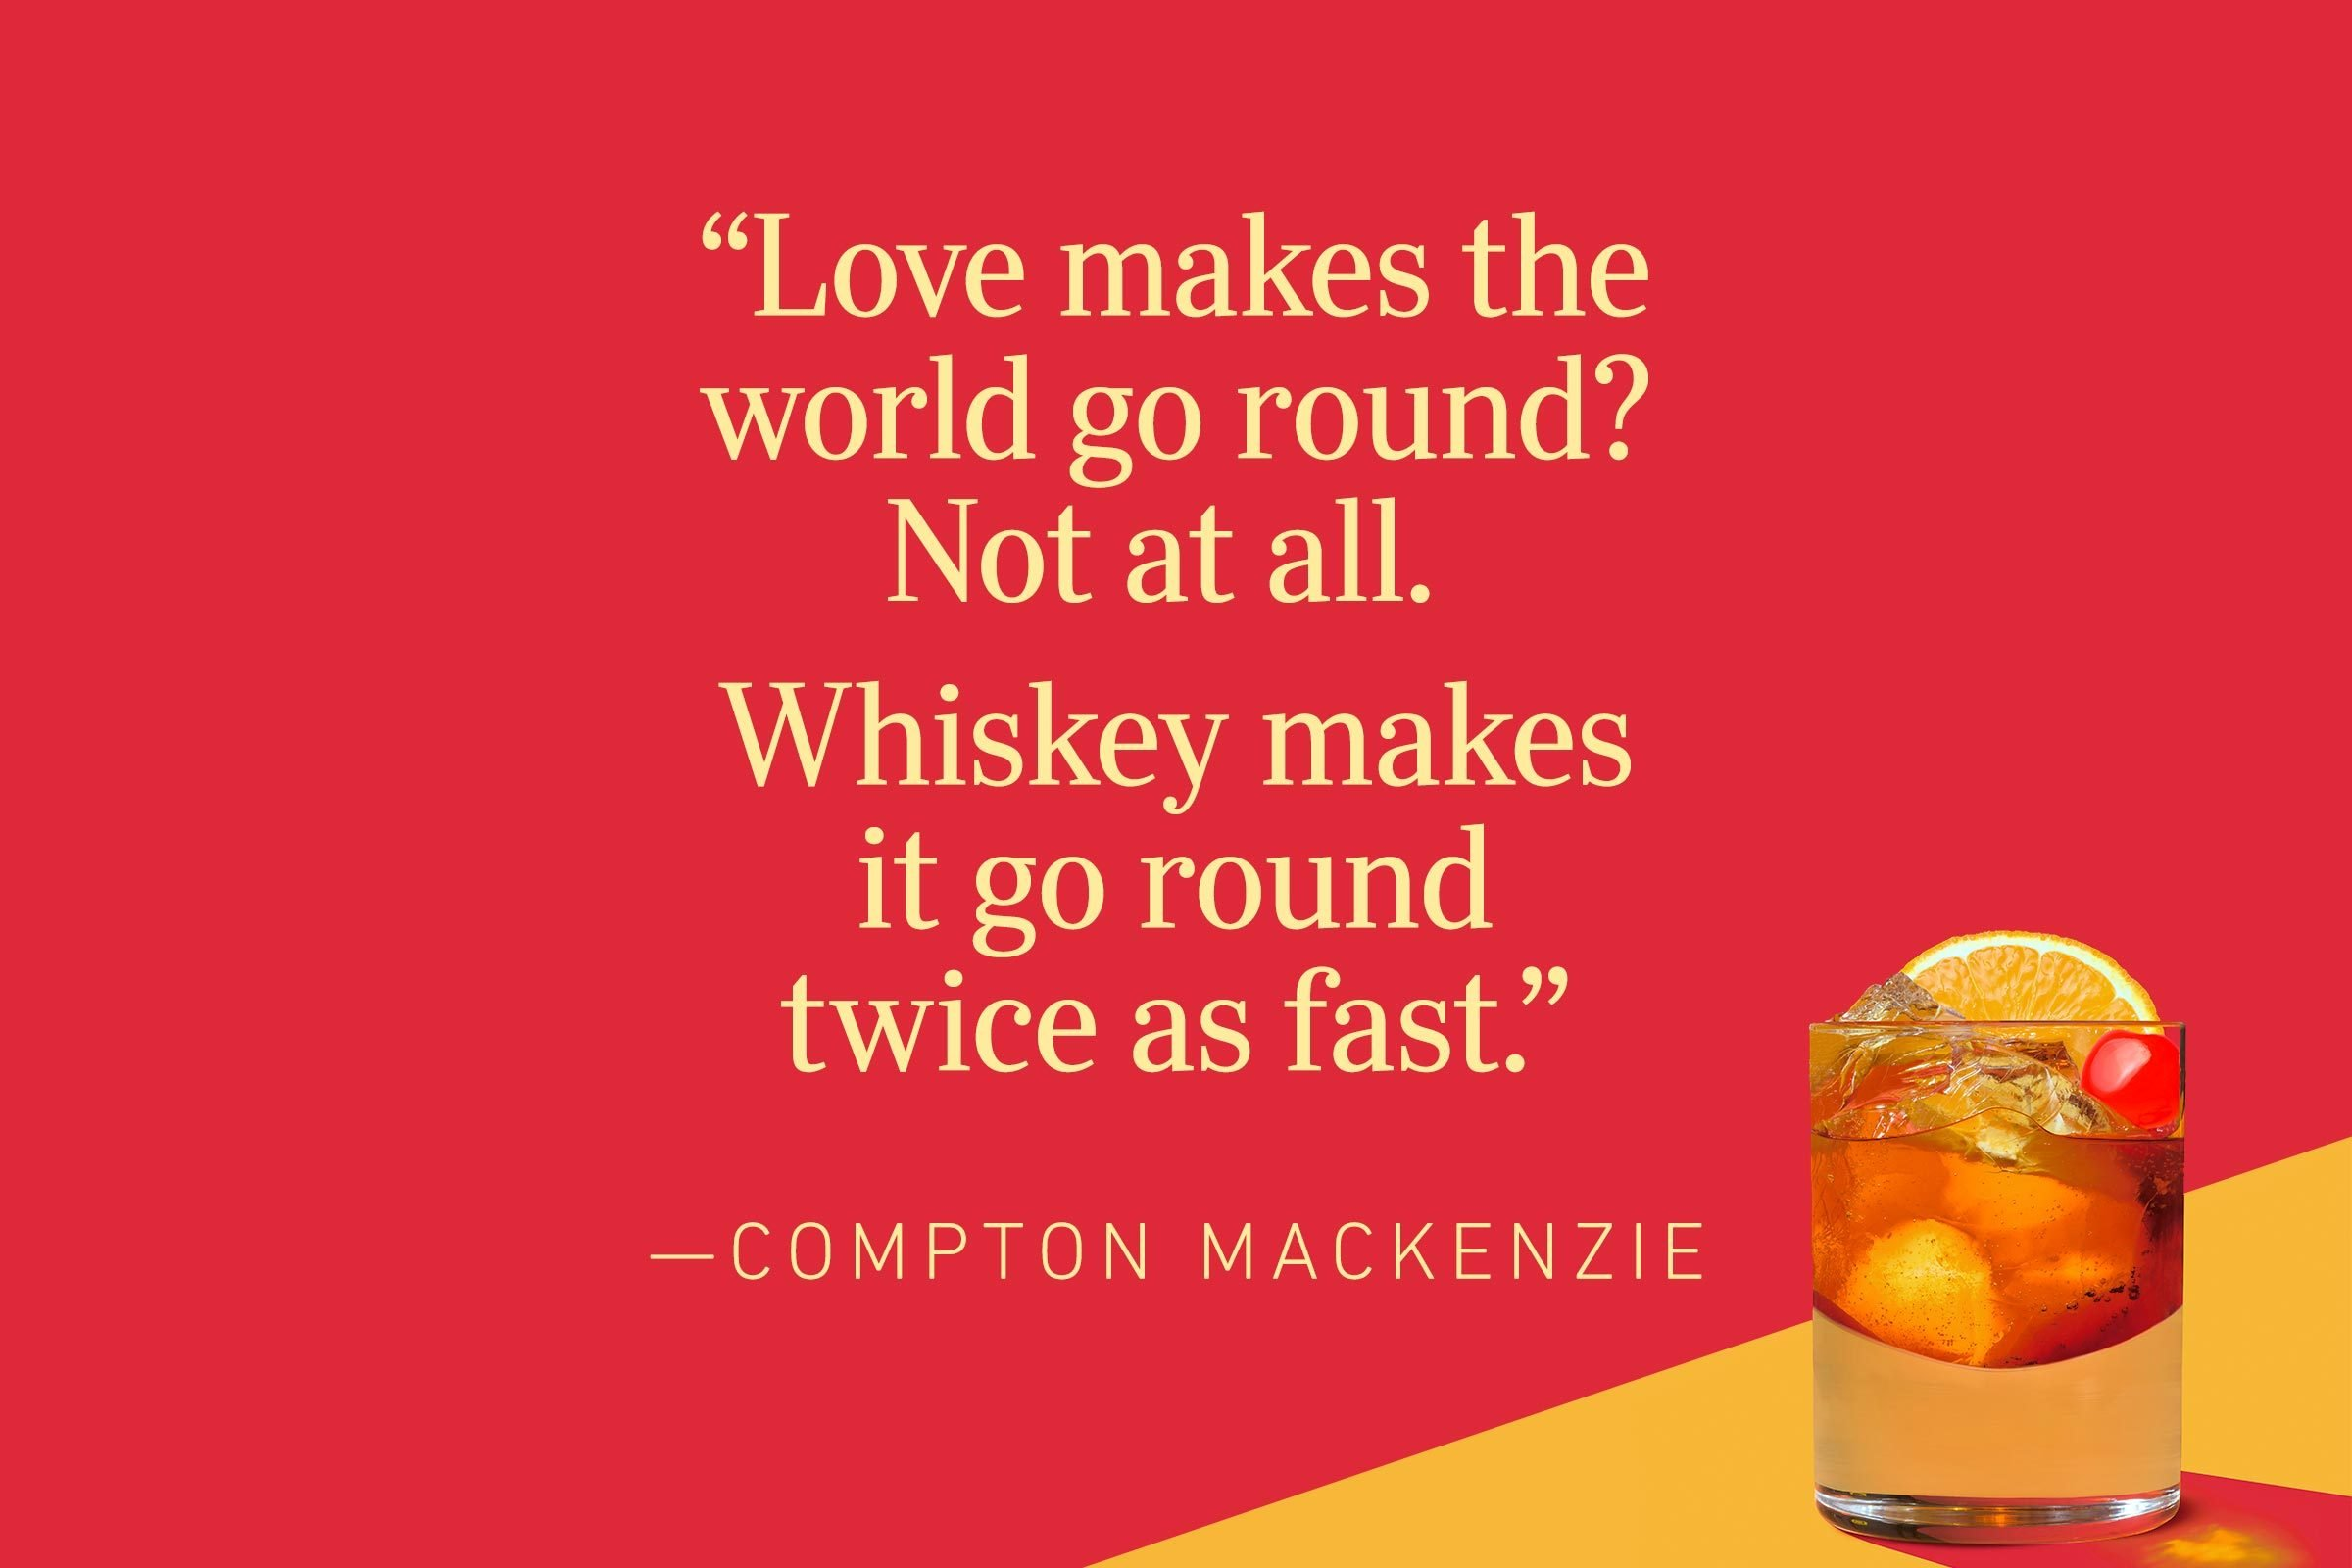 """""""Love makes the world go round? Not at all. Whiskey makes it go round twice as fast.""""—Compton Mackenzie"""